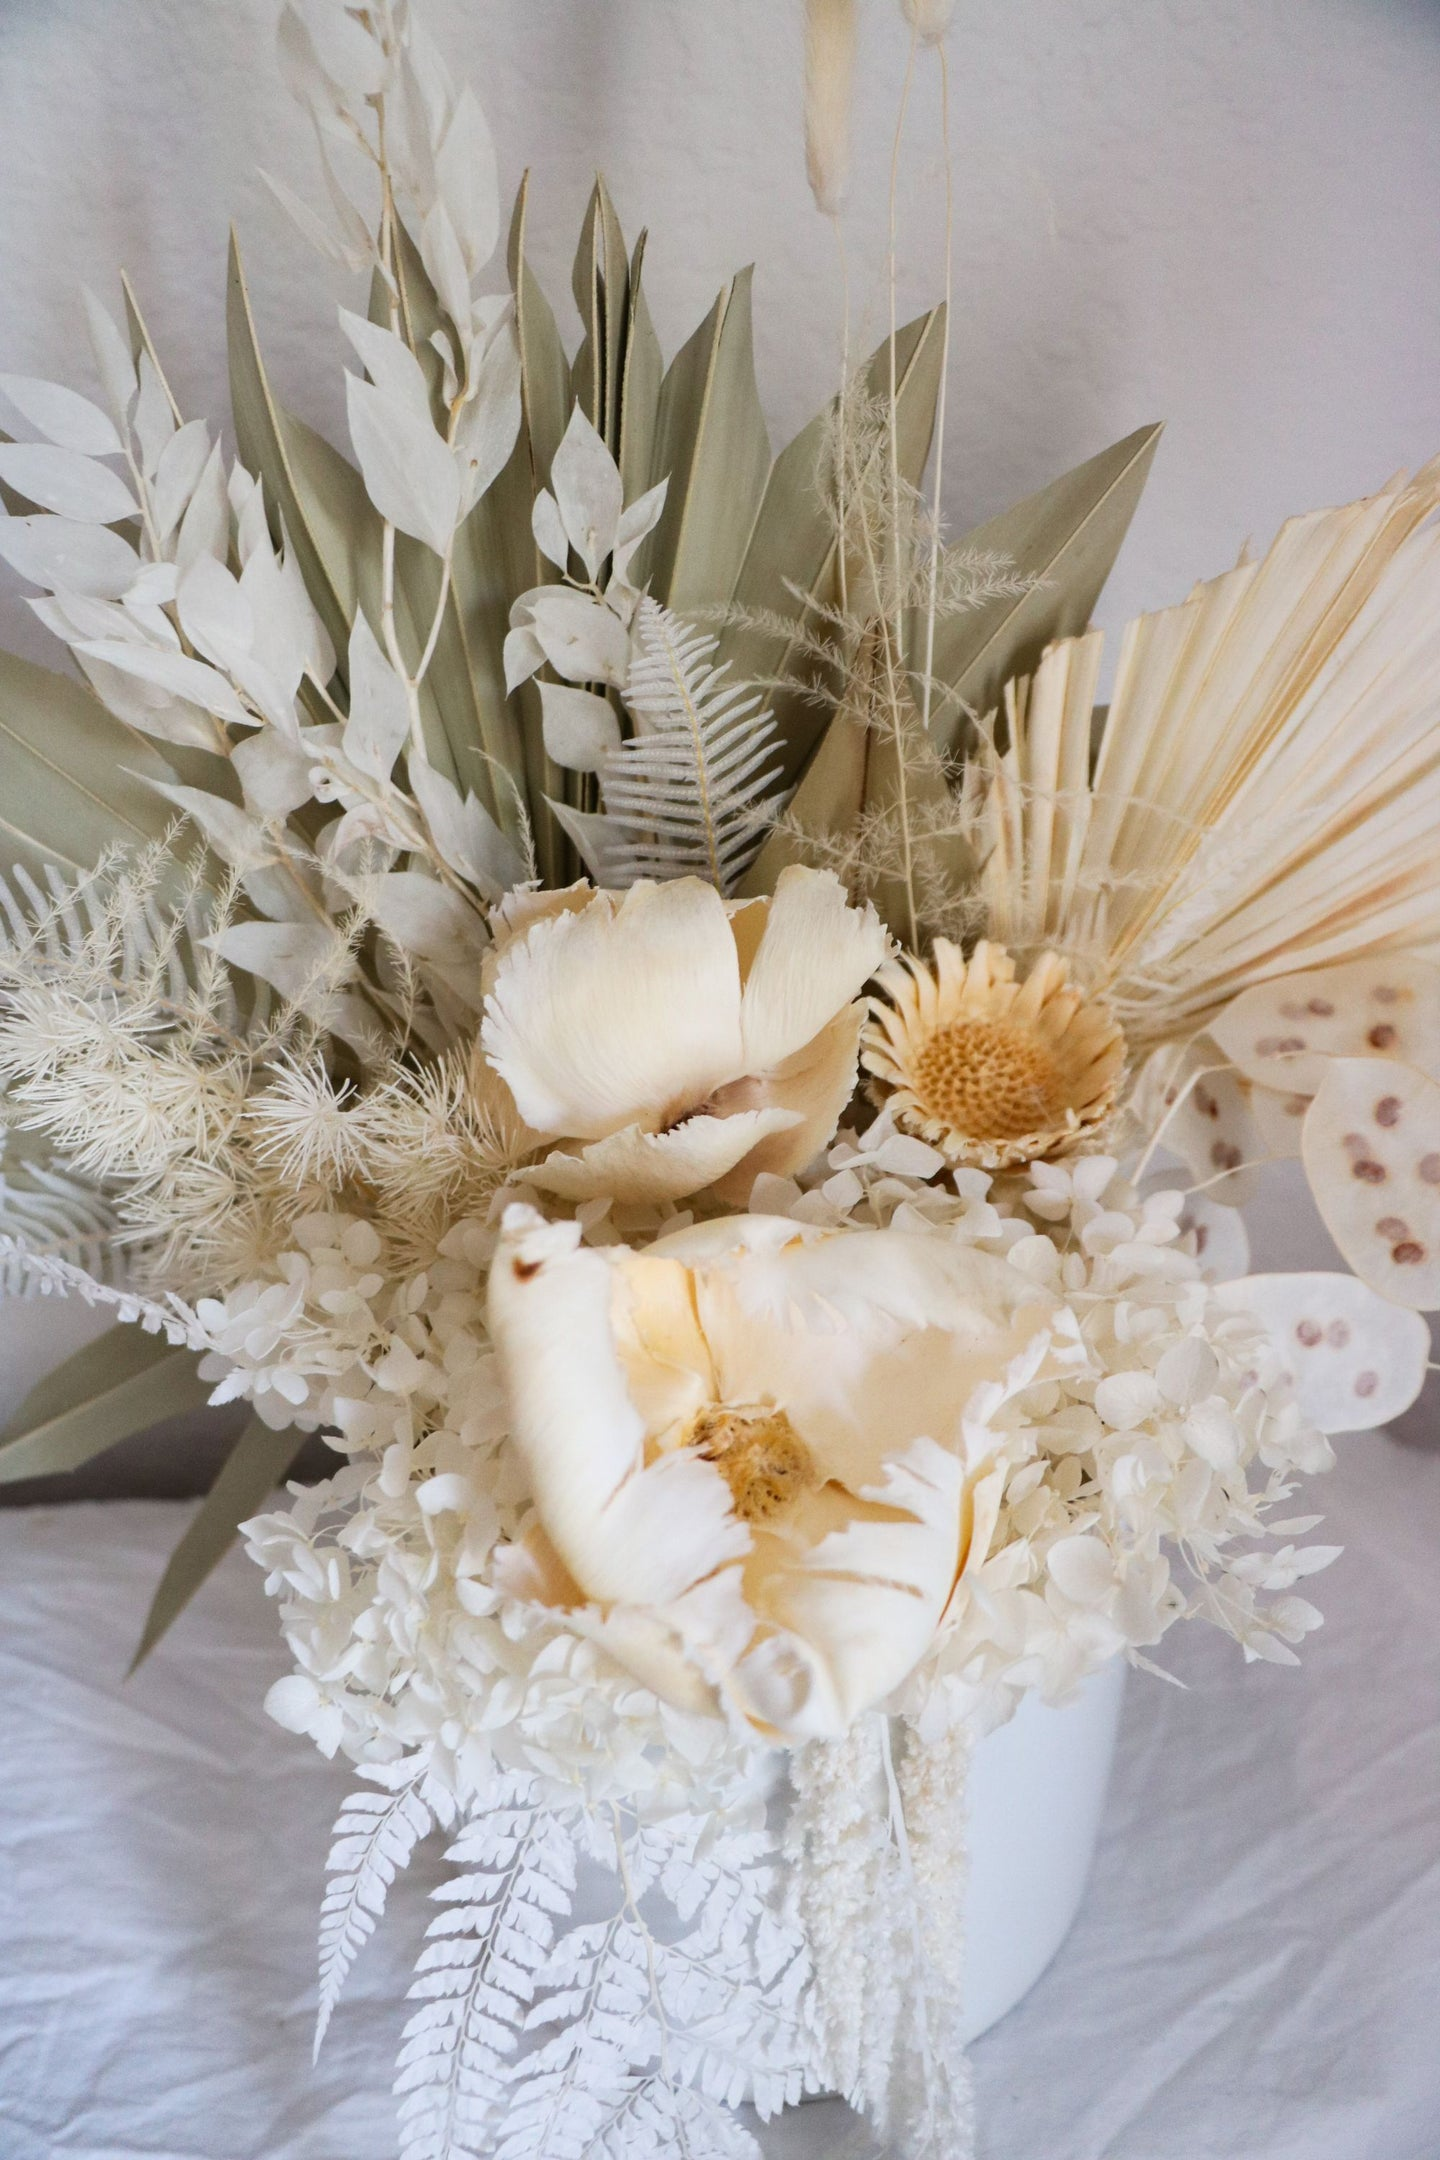 Dried Flowers & Gift Boxes